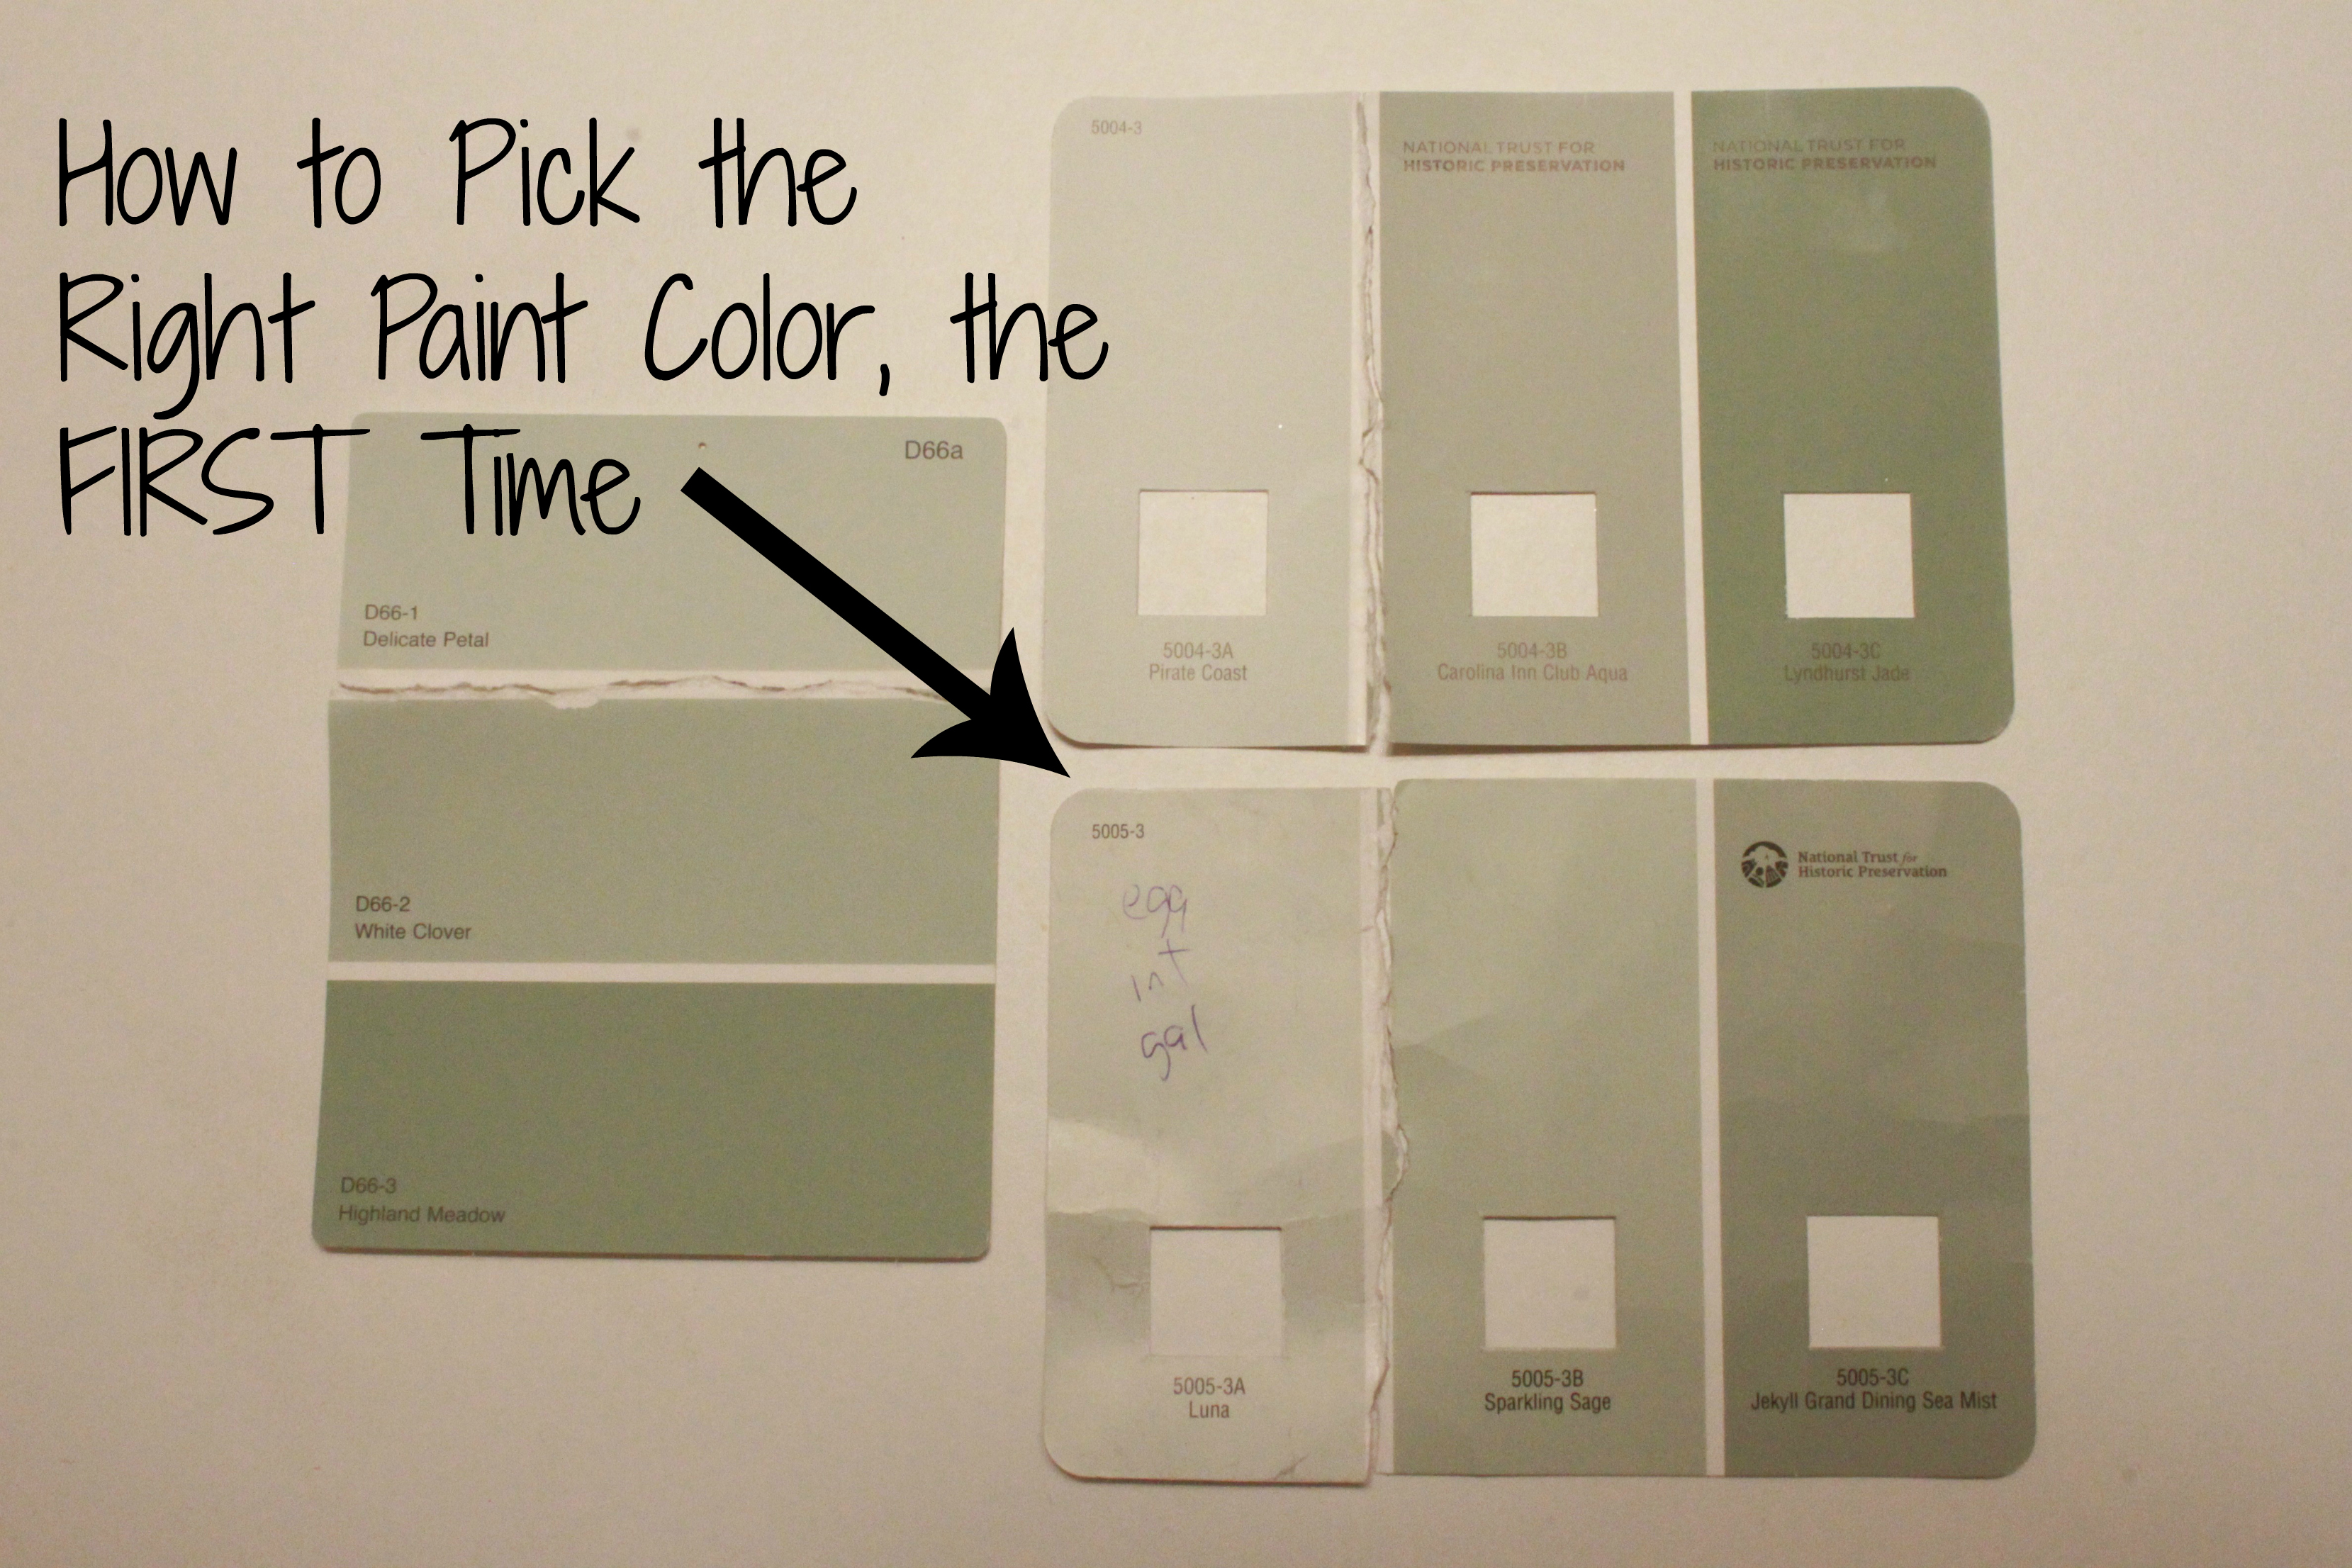 how to pick the perfect paint color, the first time | all things new